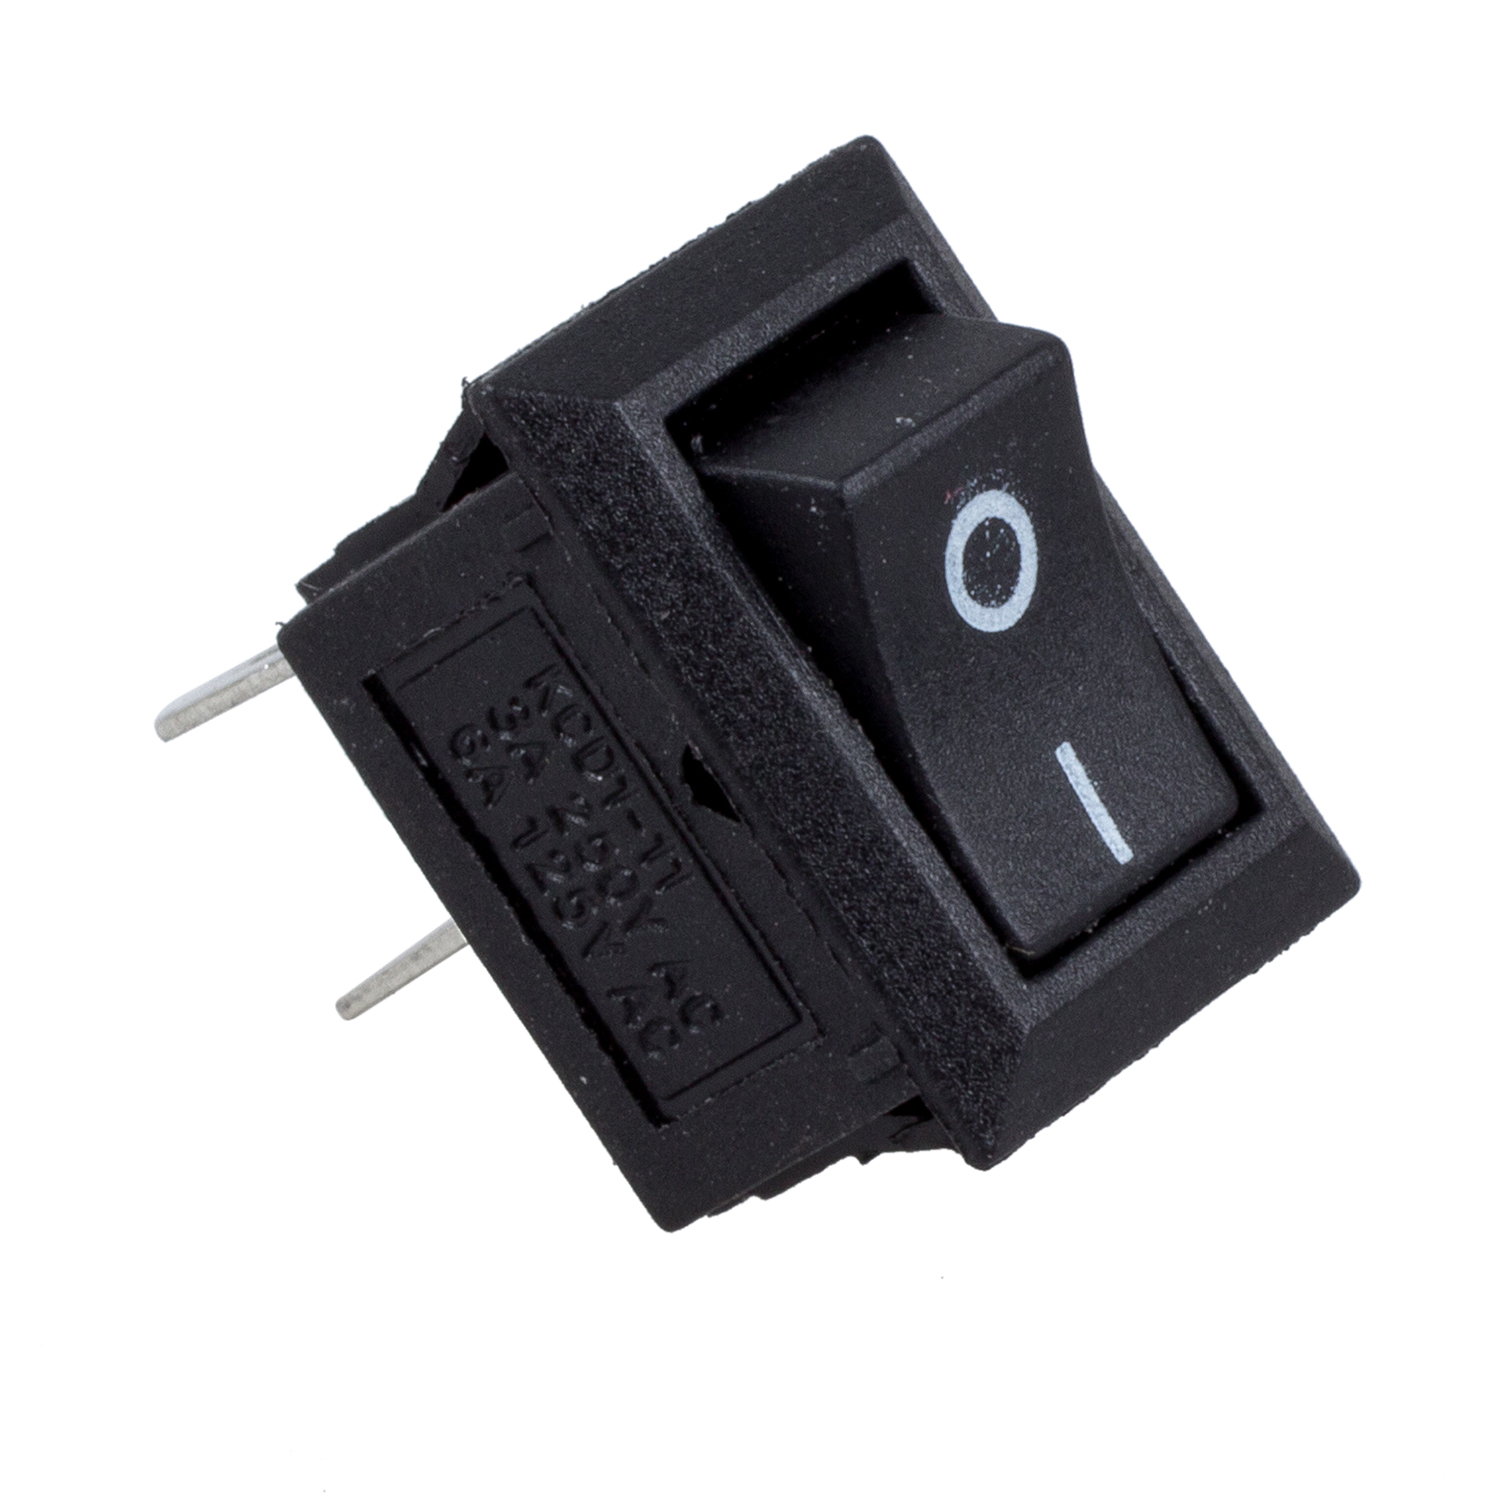 High Quality 5Pcs/Lot 2 Pin Snap-in On/Off Position Snap Boat Button Switch 12V/110V/250V 5pcs black mini round 3 pin spdt on off rocker switch snap in s018y high quality